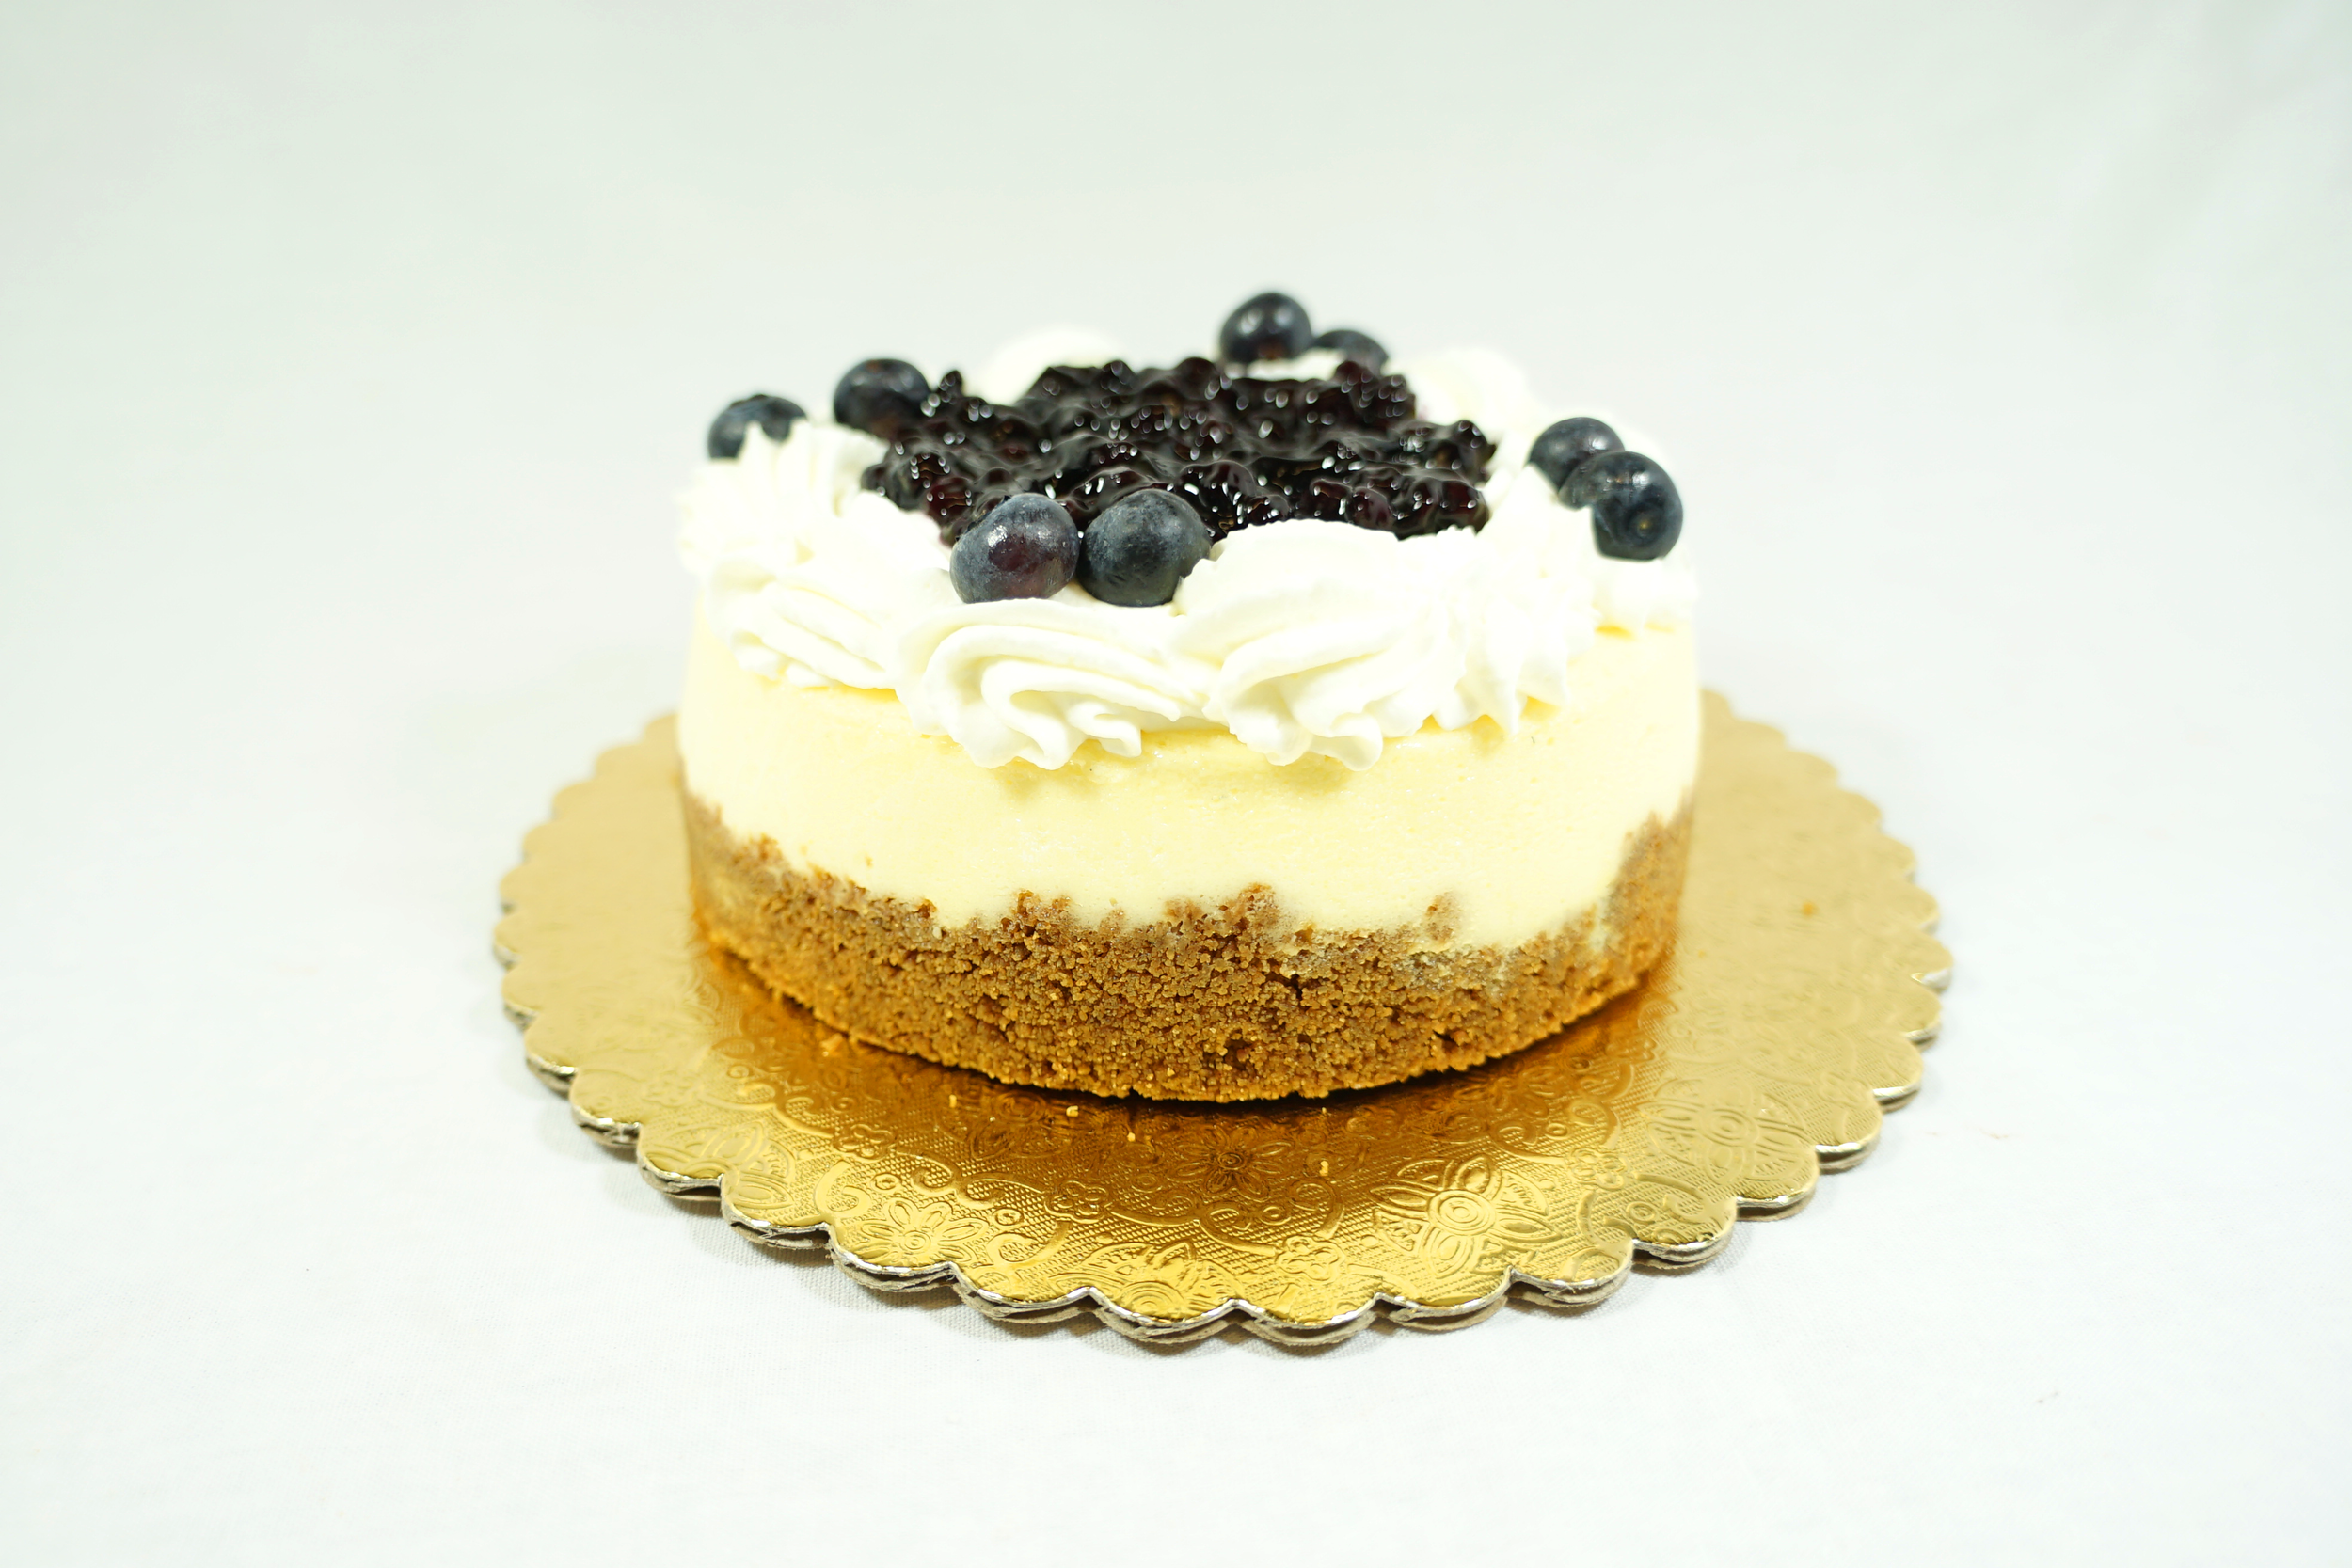 Blueberry Cheesecake - Graham cracker crust with blueberry topping.